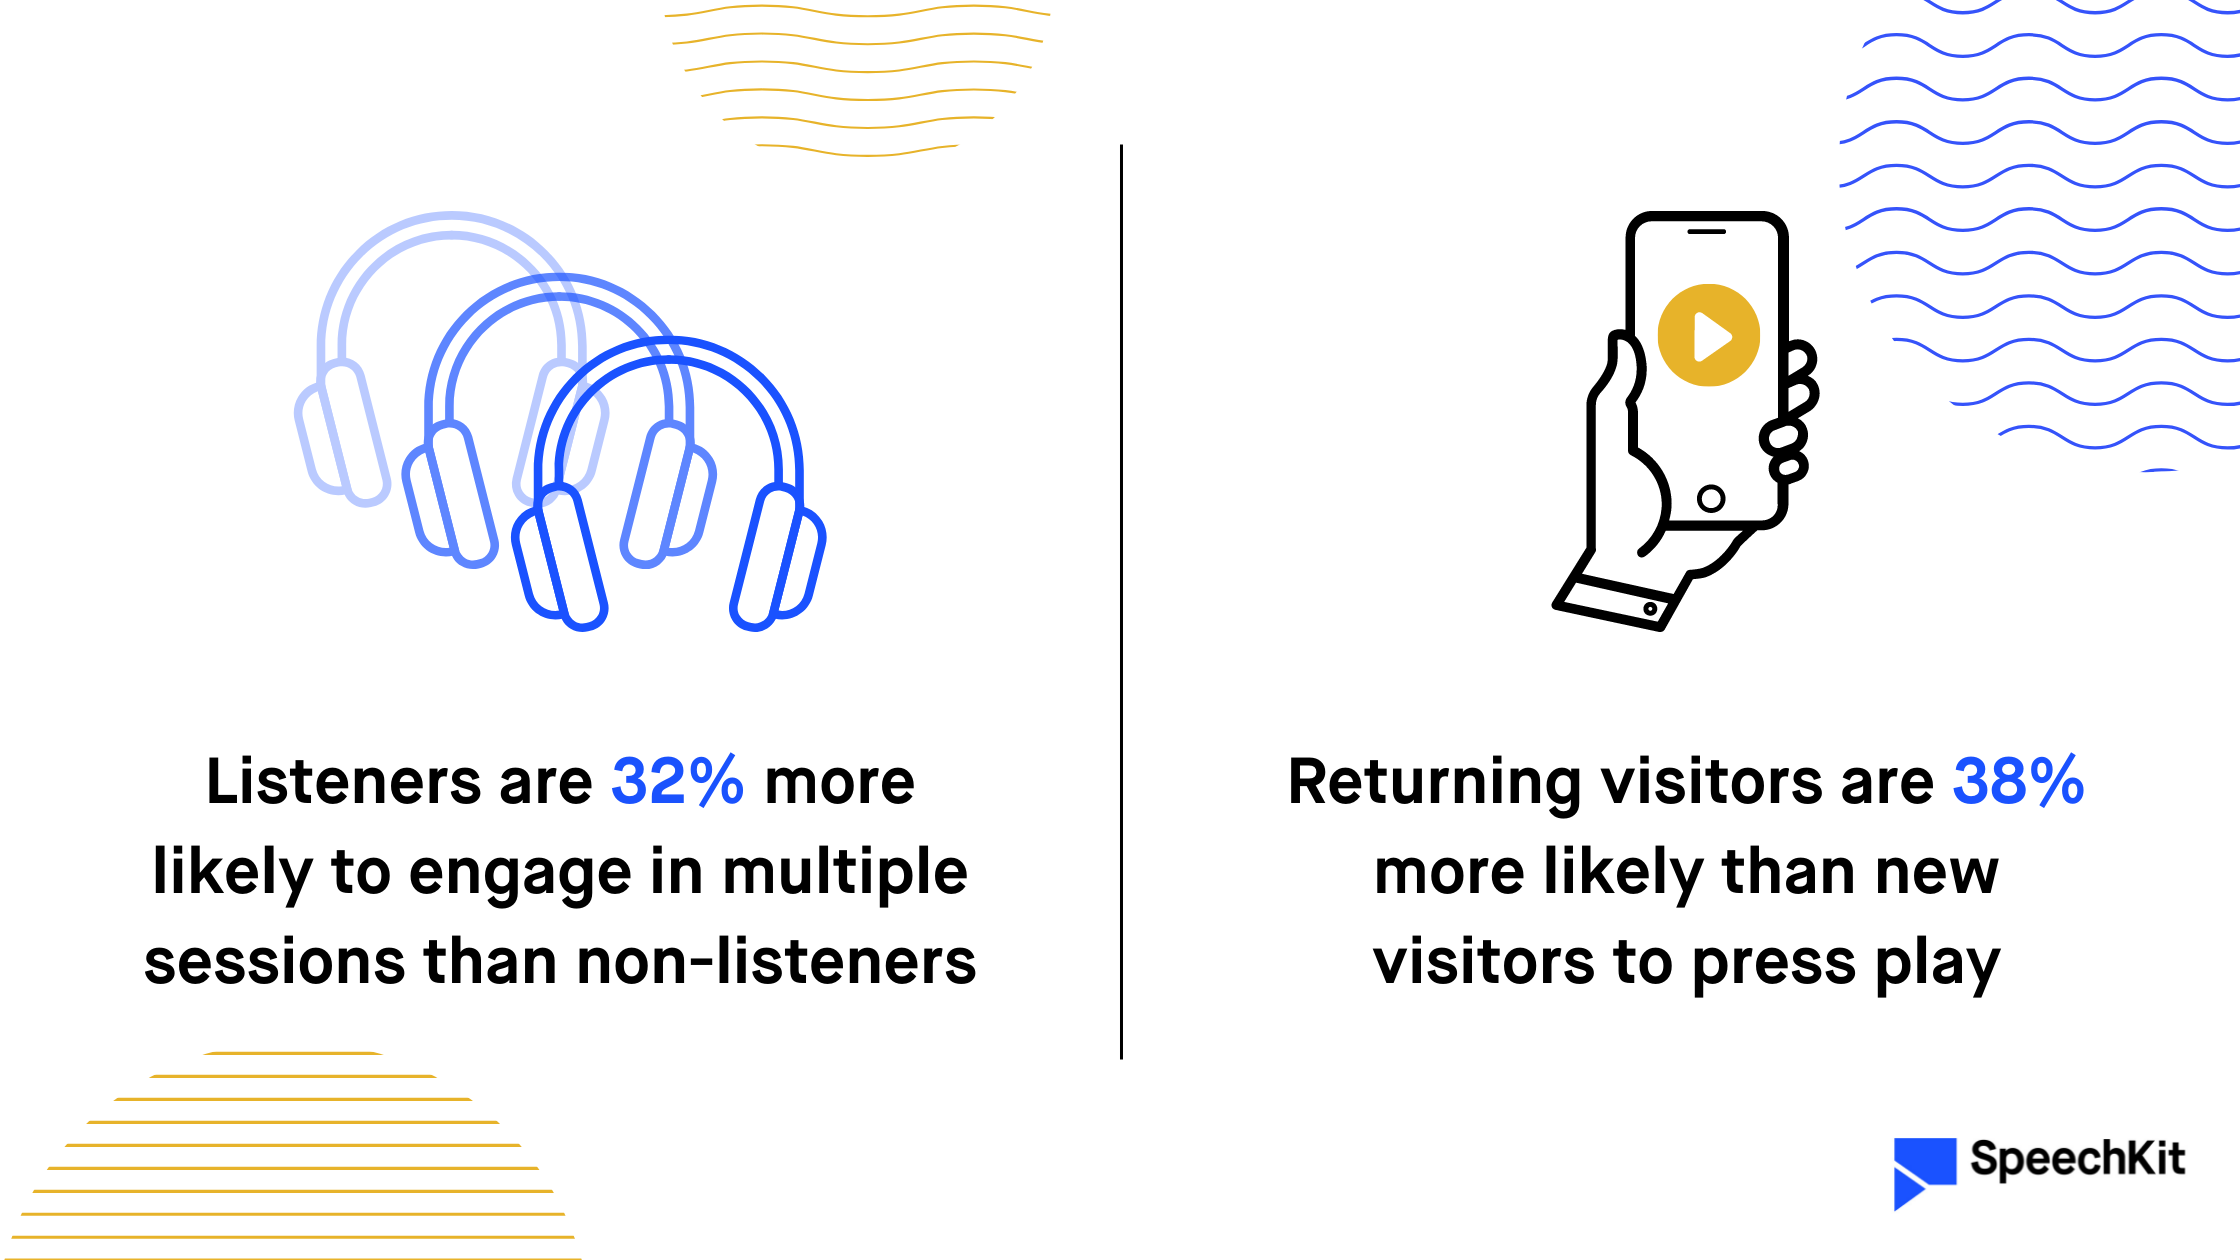 Listeners are 32% more likely to engage in multiple sessions then non-listeners / Returning visitors are 38% more likely than new visitors to press play (SpeechKit) — visualized